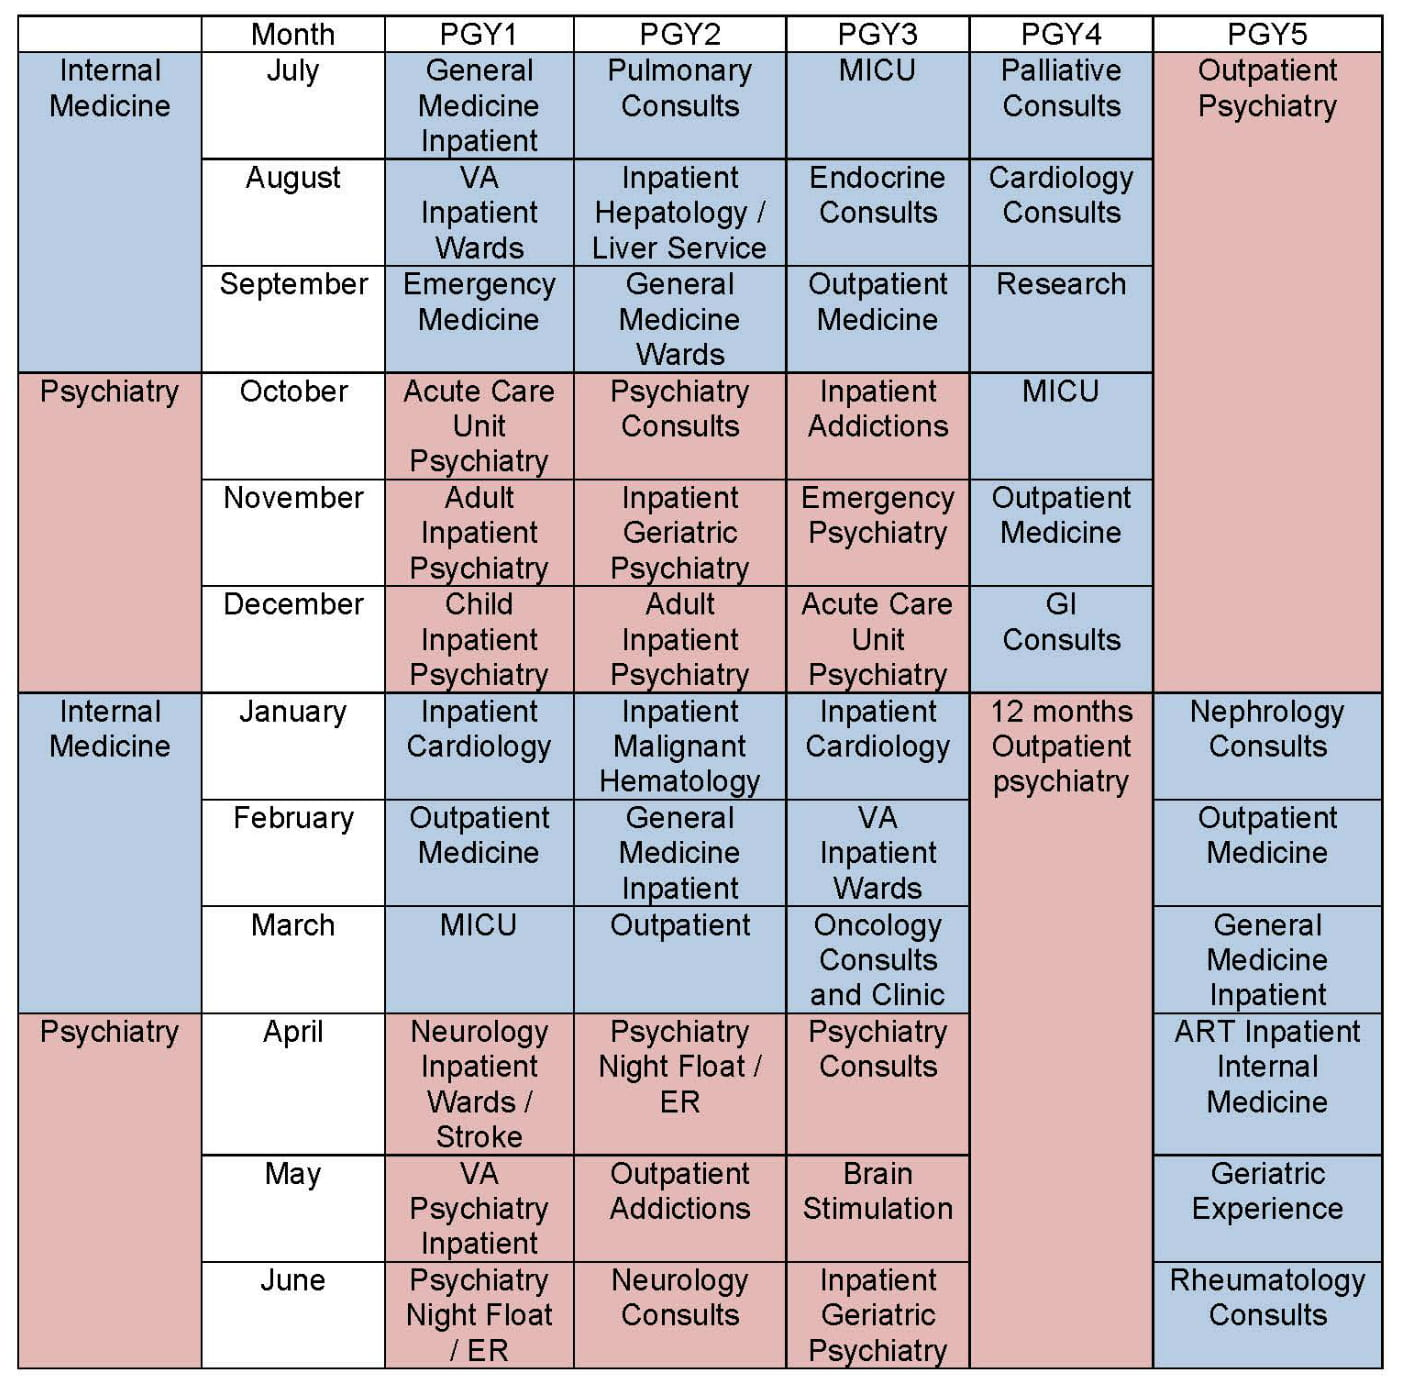 Sample schedule for the Internal Medicine and Psychiatry Residency Training Program